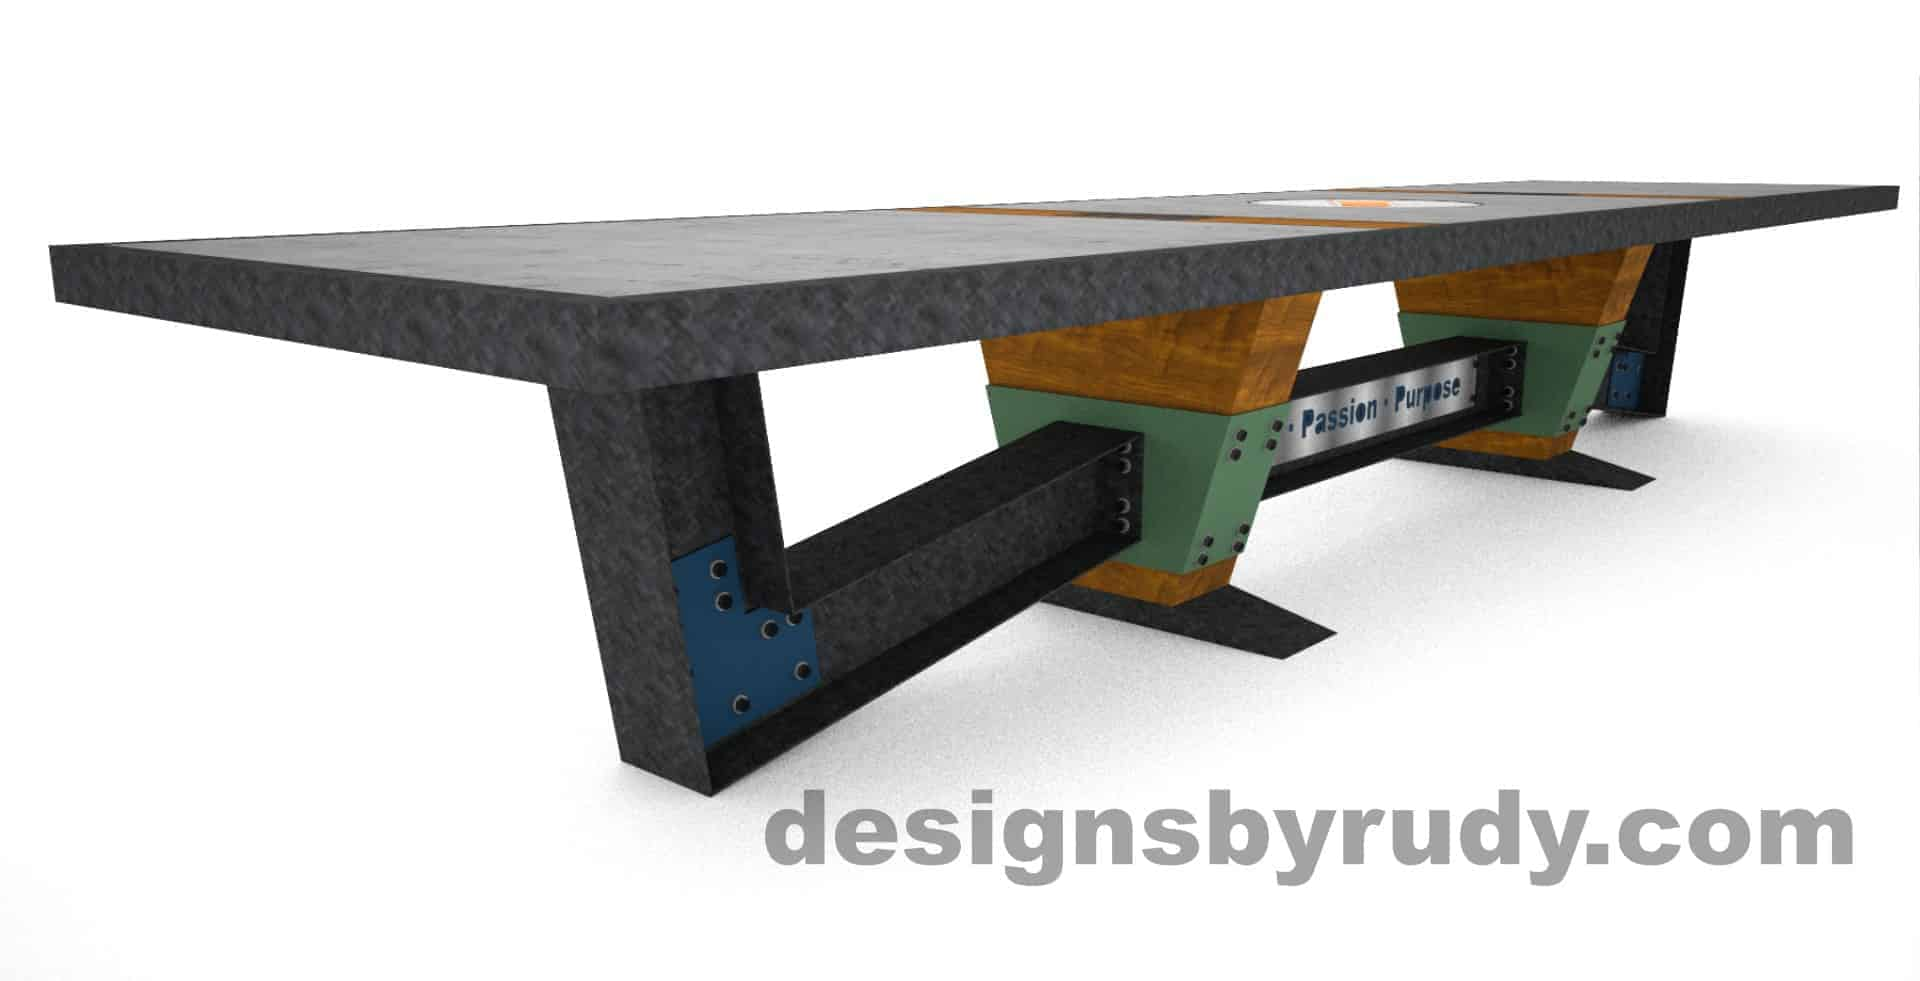 7 Concept concrete, steel, and wood conference table full top view